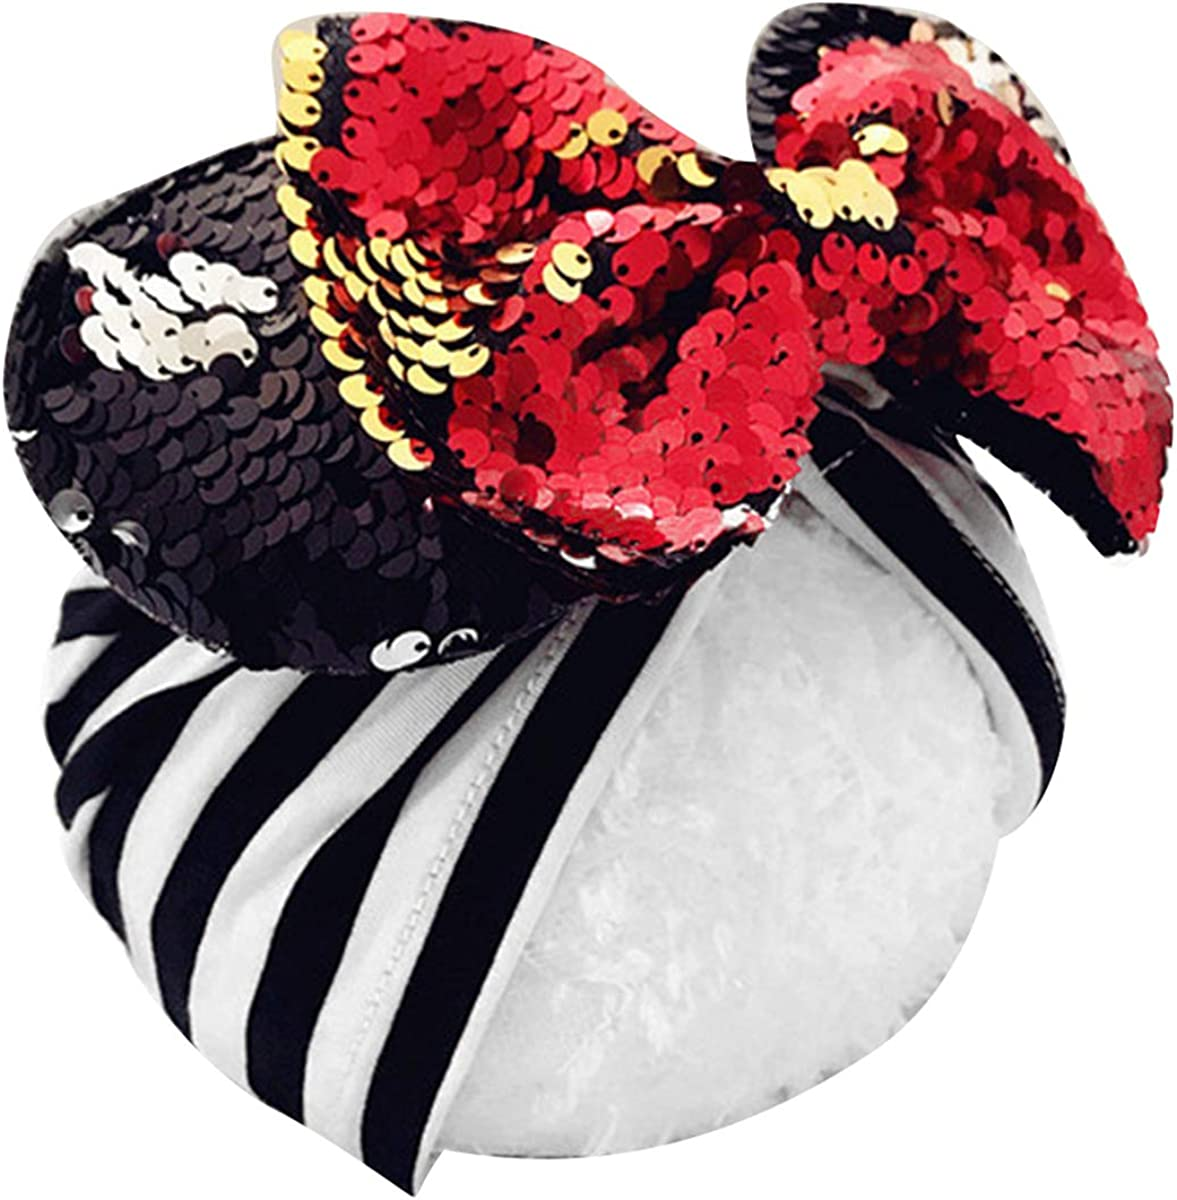 Mouse Ears Headband Hats Sequin New Orleans Mall Velvet Headwr Superior and Wide